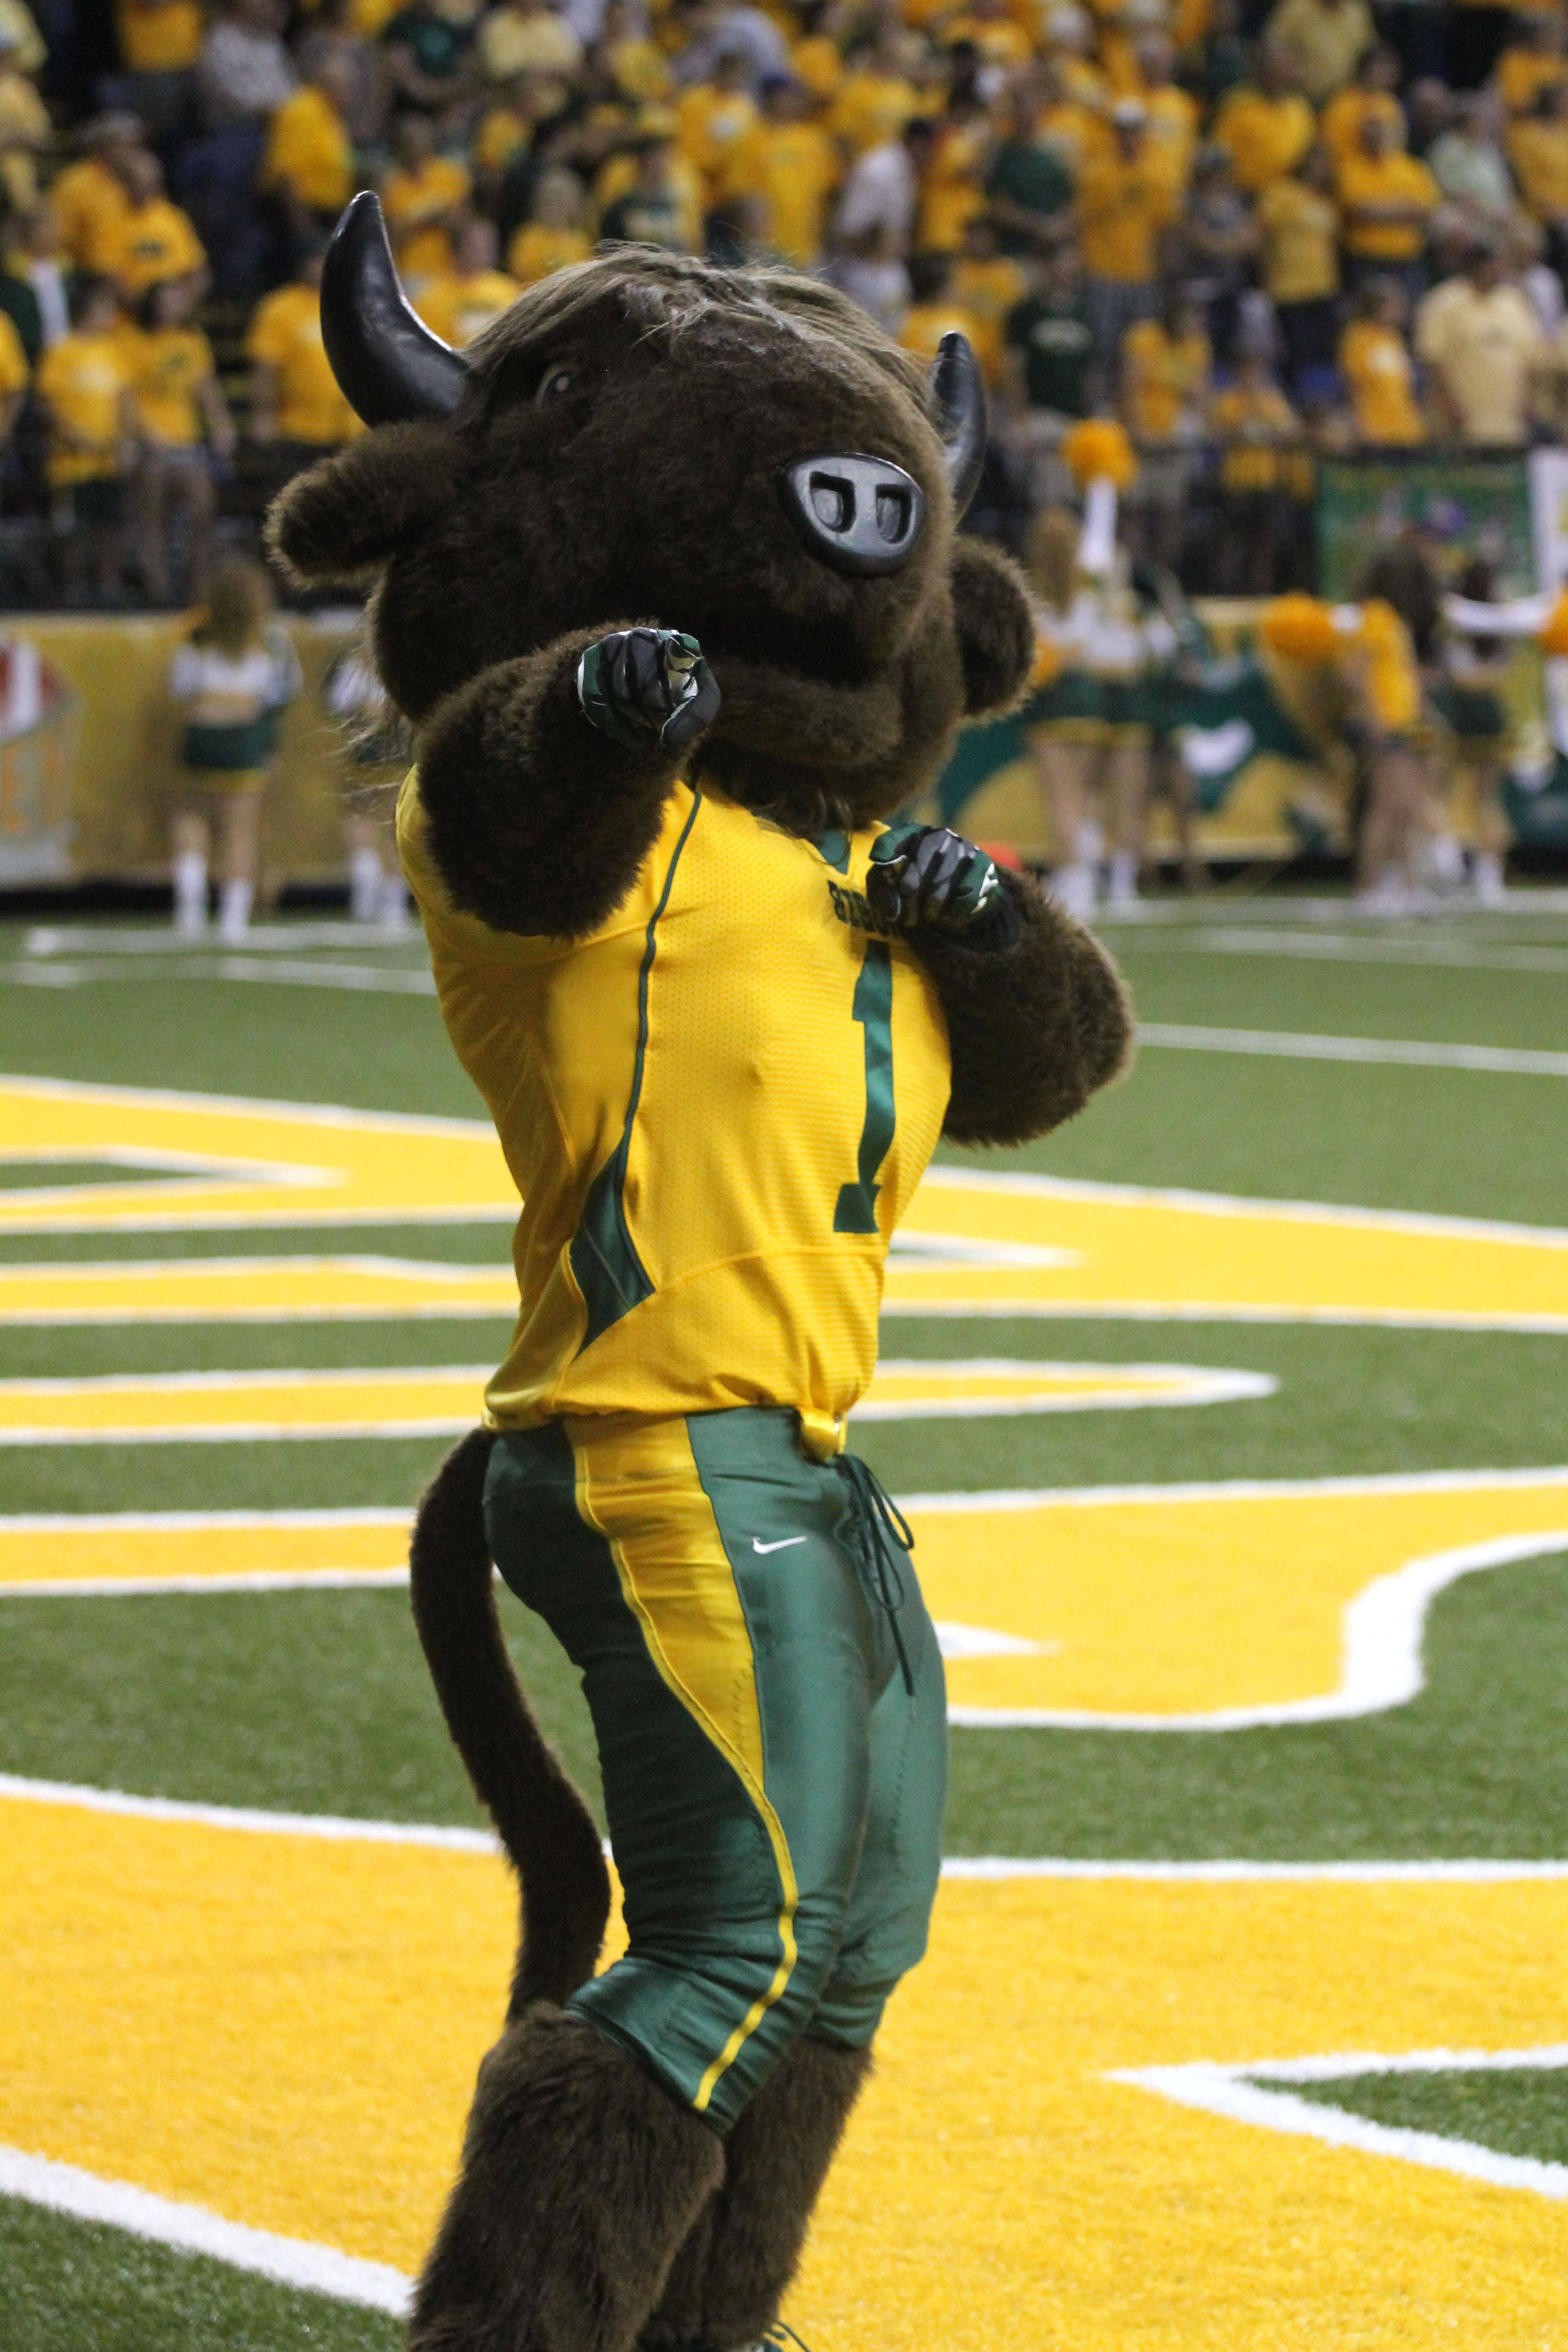 Always reppin' the Green and the Gold Ndsu bison